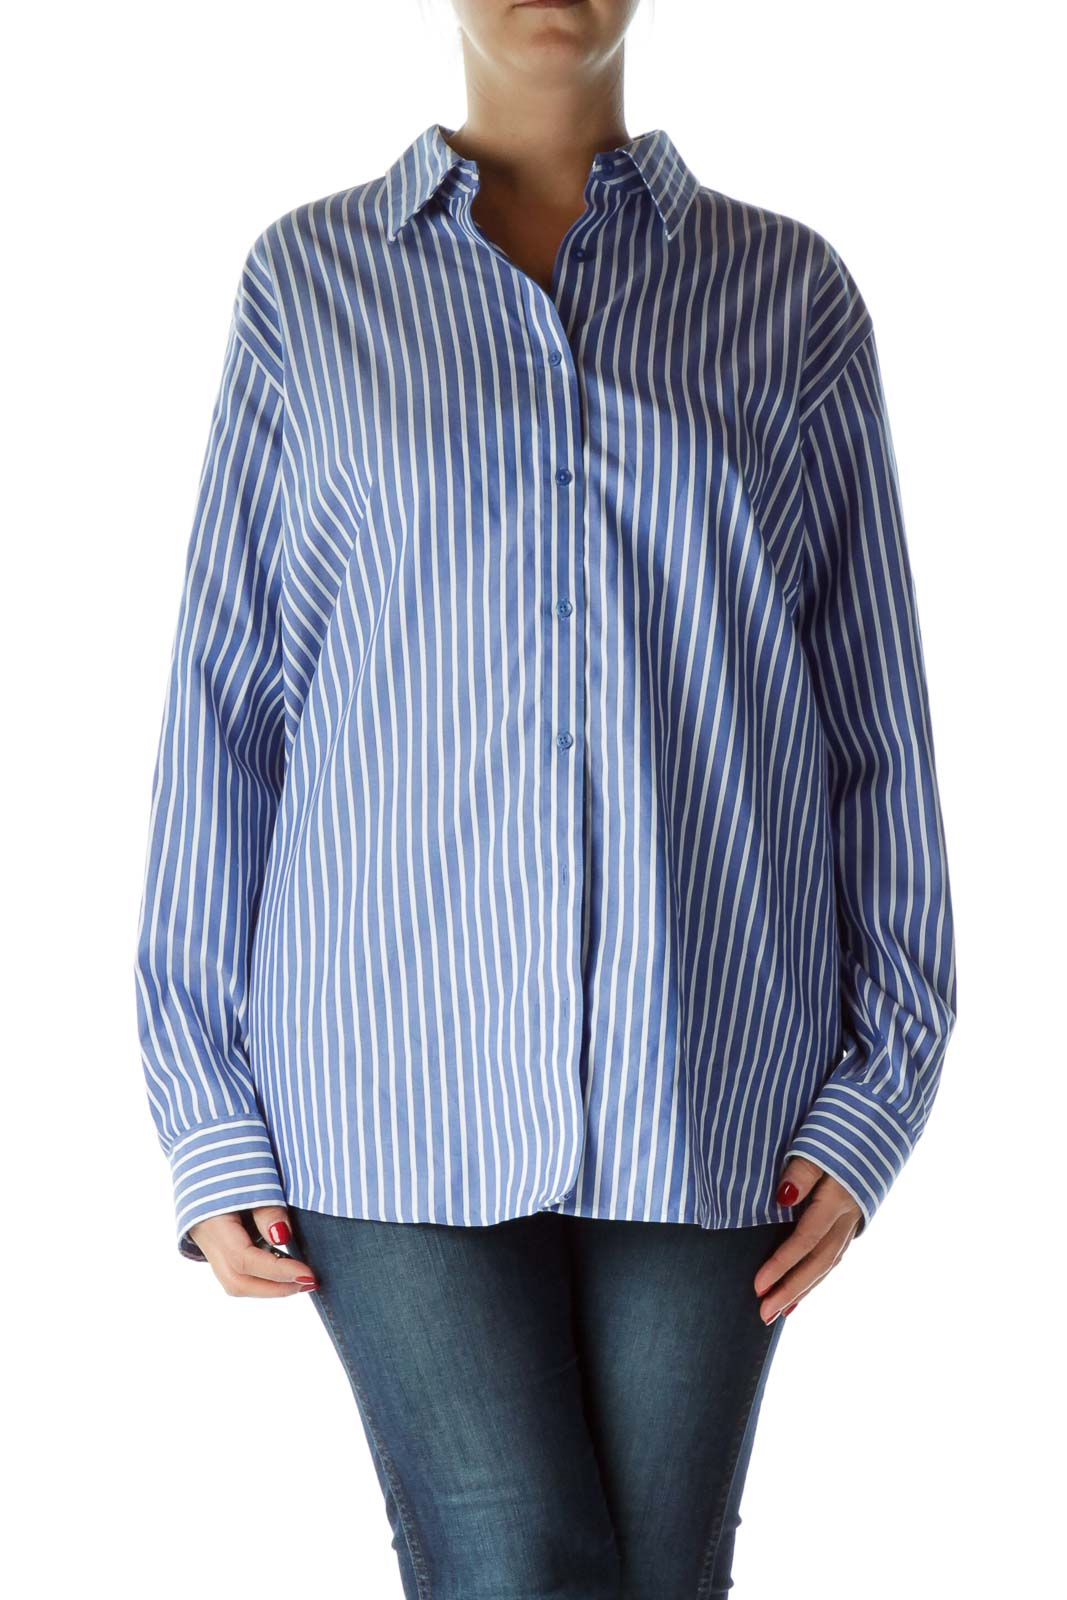 Blue White Pinstripe Collared Shirt